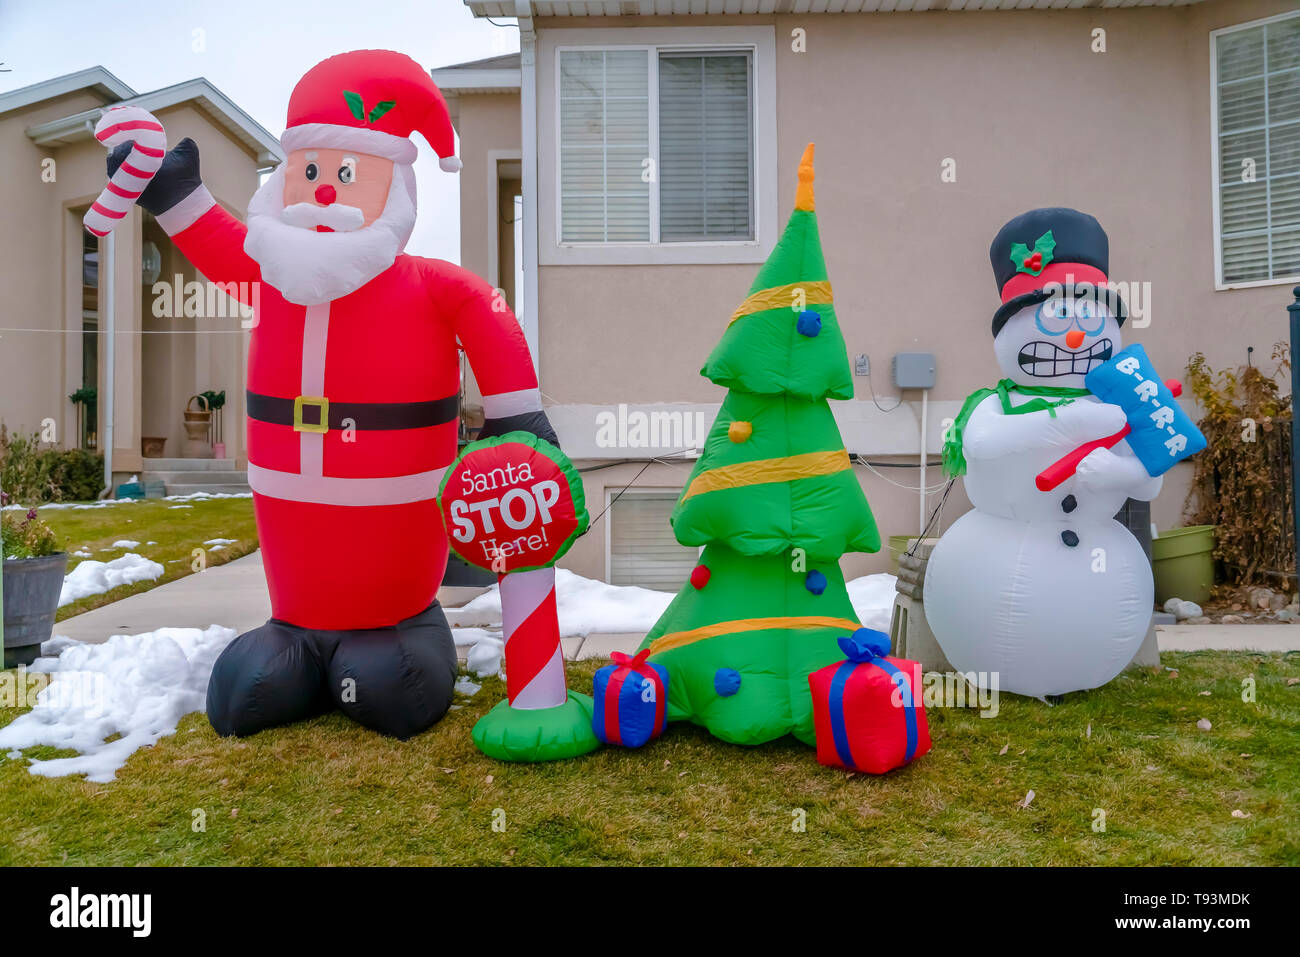 Inflatable Christmas Decorations.Inflatable Christmas Decorations On A Grassy Yard With Snow